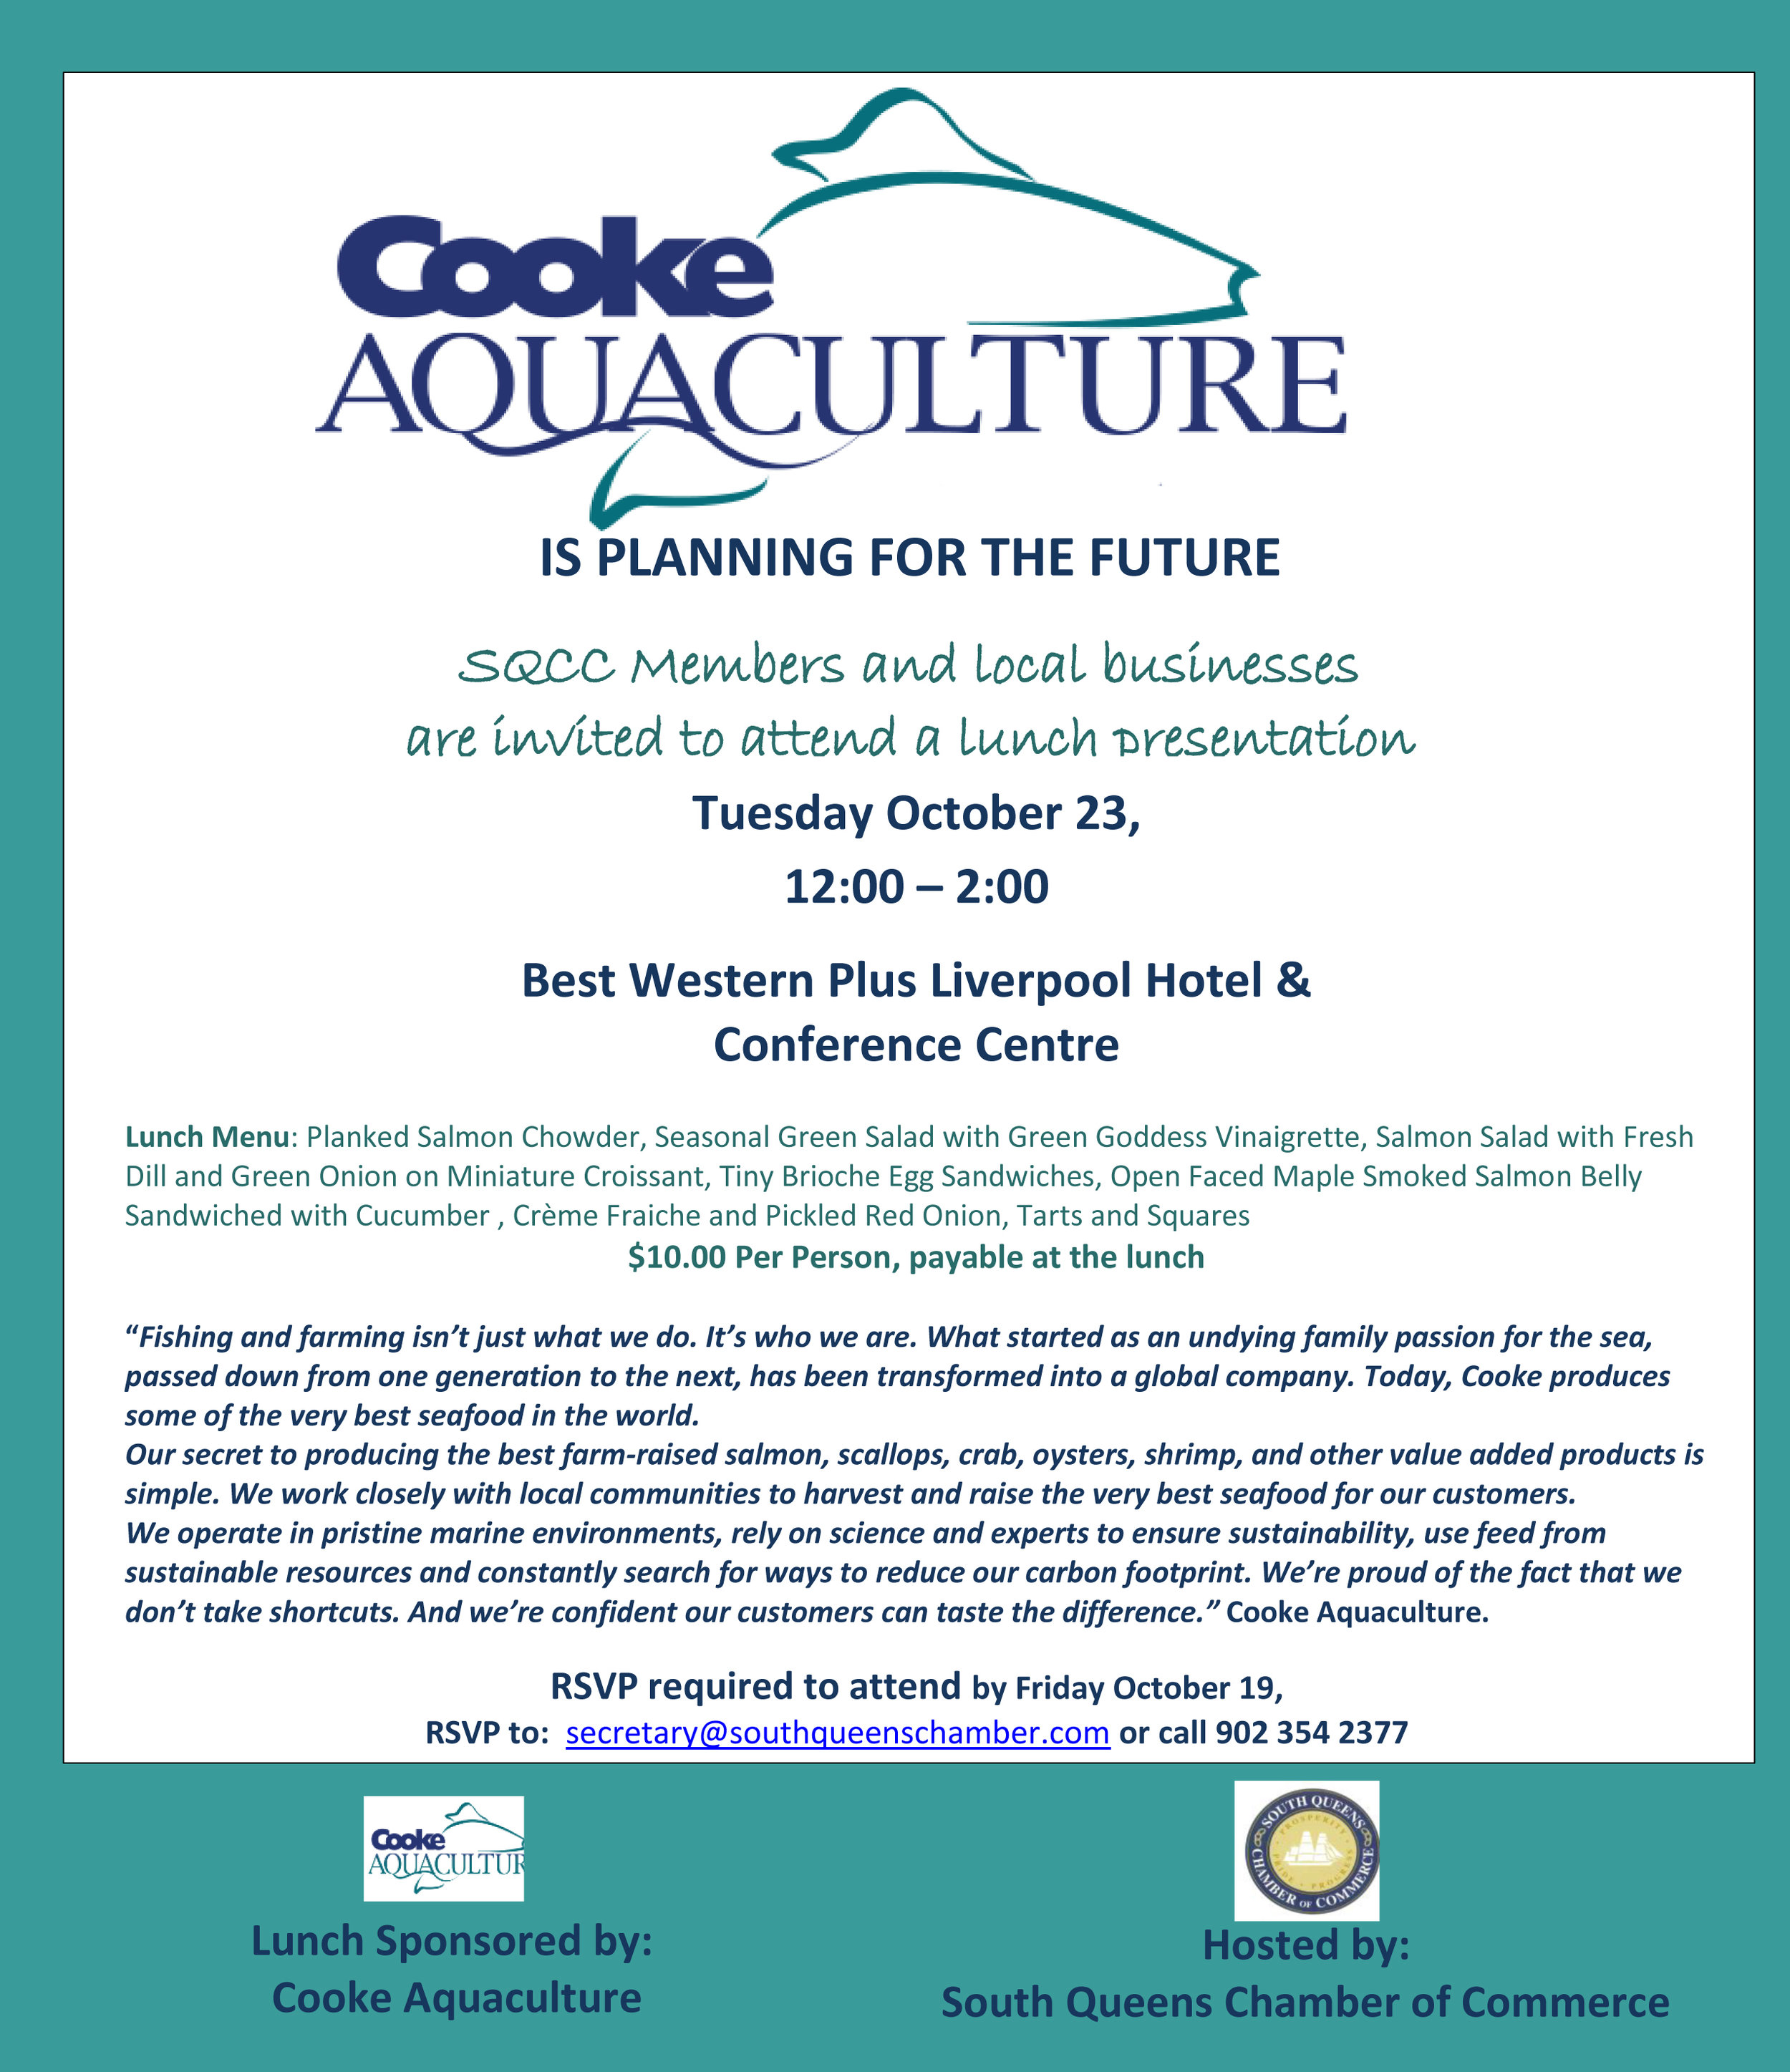 COOKE AQUACULTURE IS PLANNING FOR THE FUTURE - SQCC Members and local businessesare invited to attend a lunch presentationTuesday October 23,12:00 – 2:00Best Western Plus Liverpool Hotel & Conference Centre